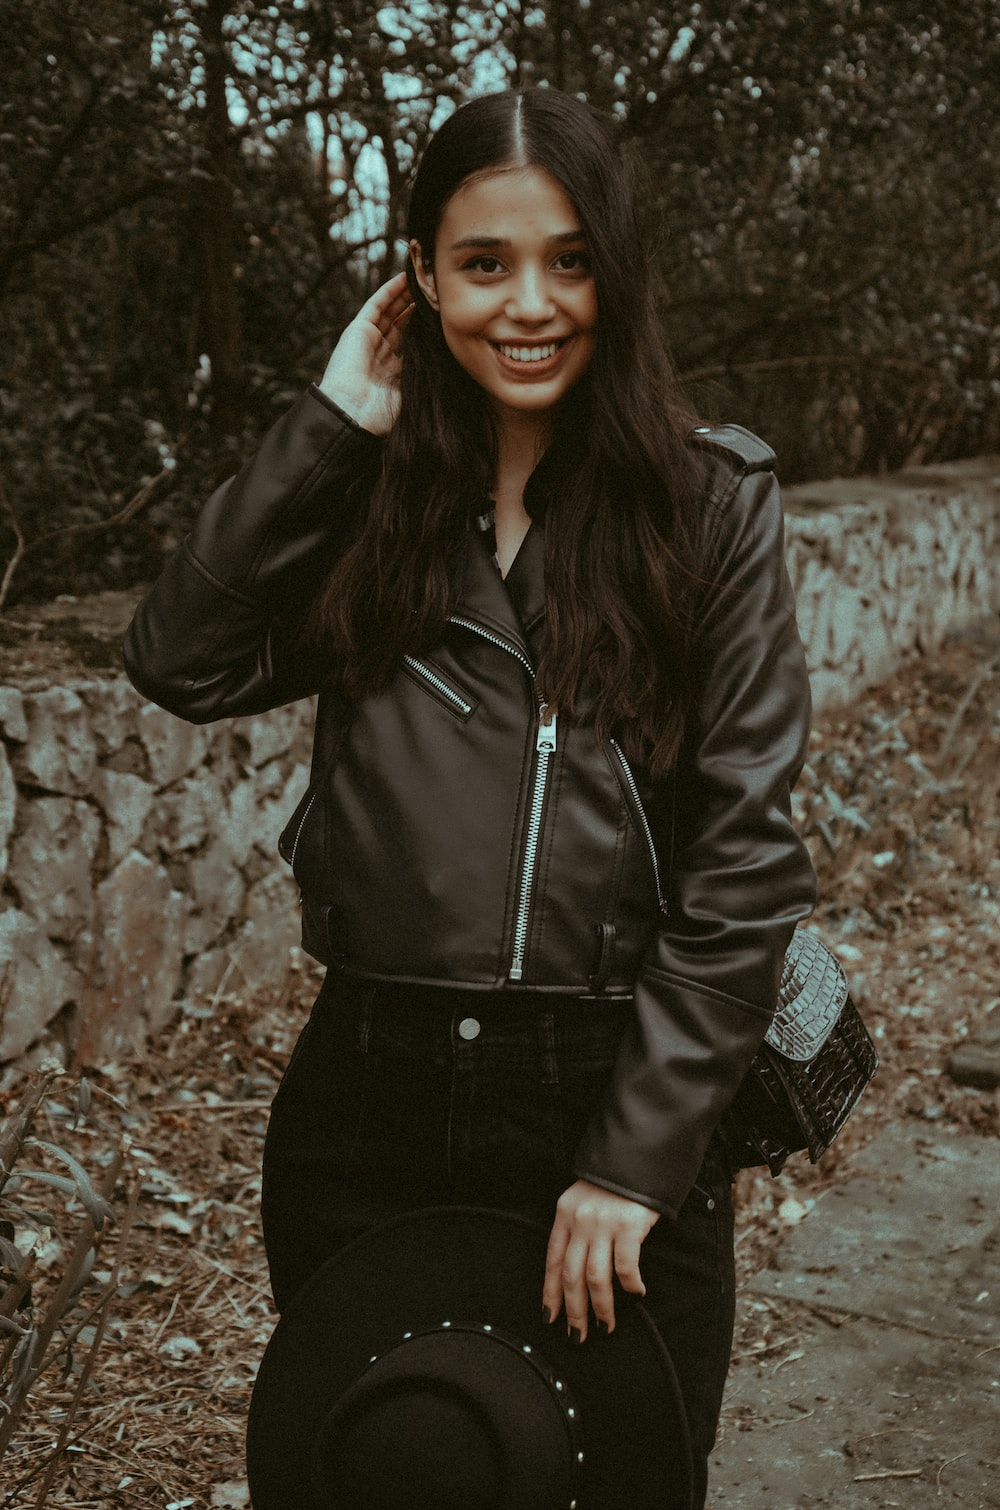 woman in black leather jacket standing near brown dried leaves during daytime